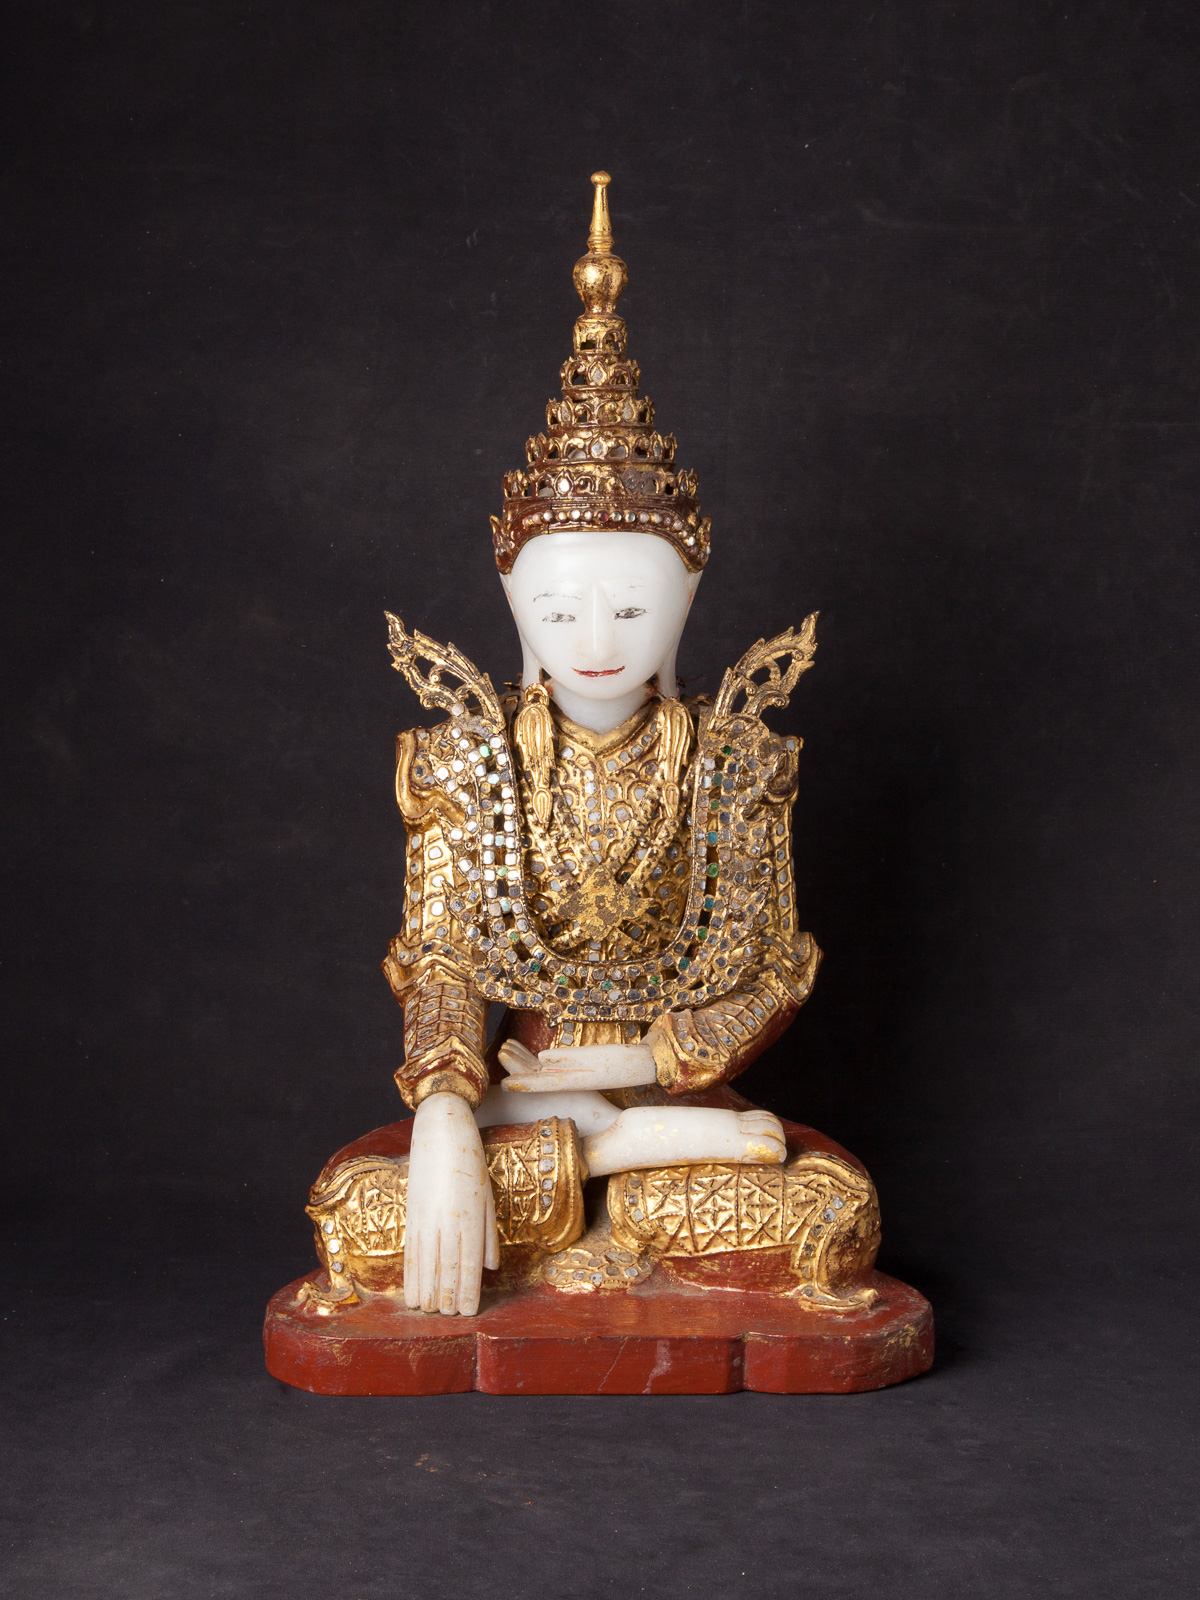 Antique Burmese crowned Buddha statue from Burma